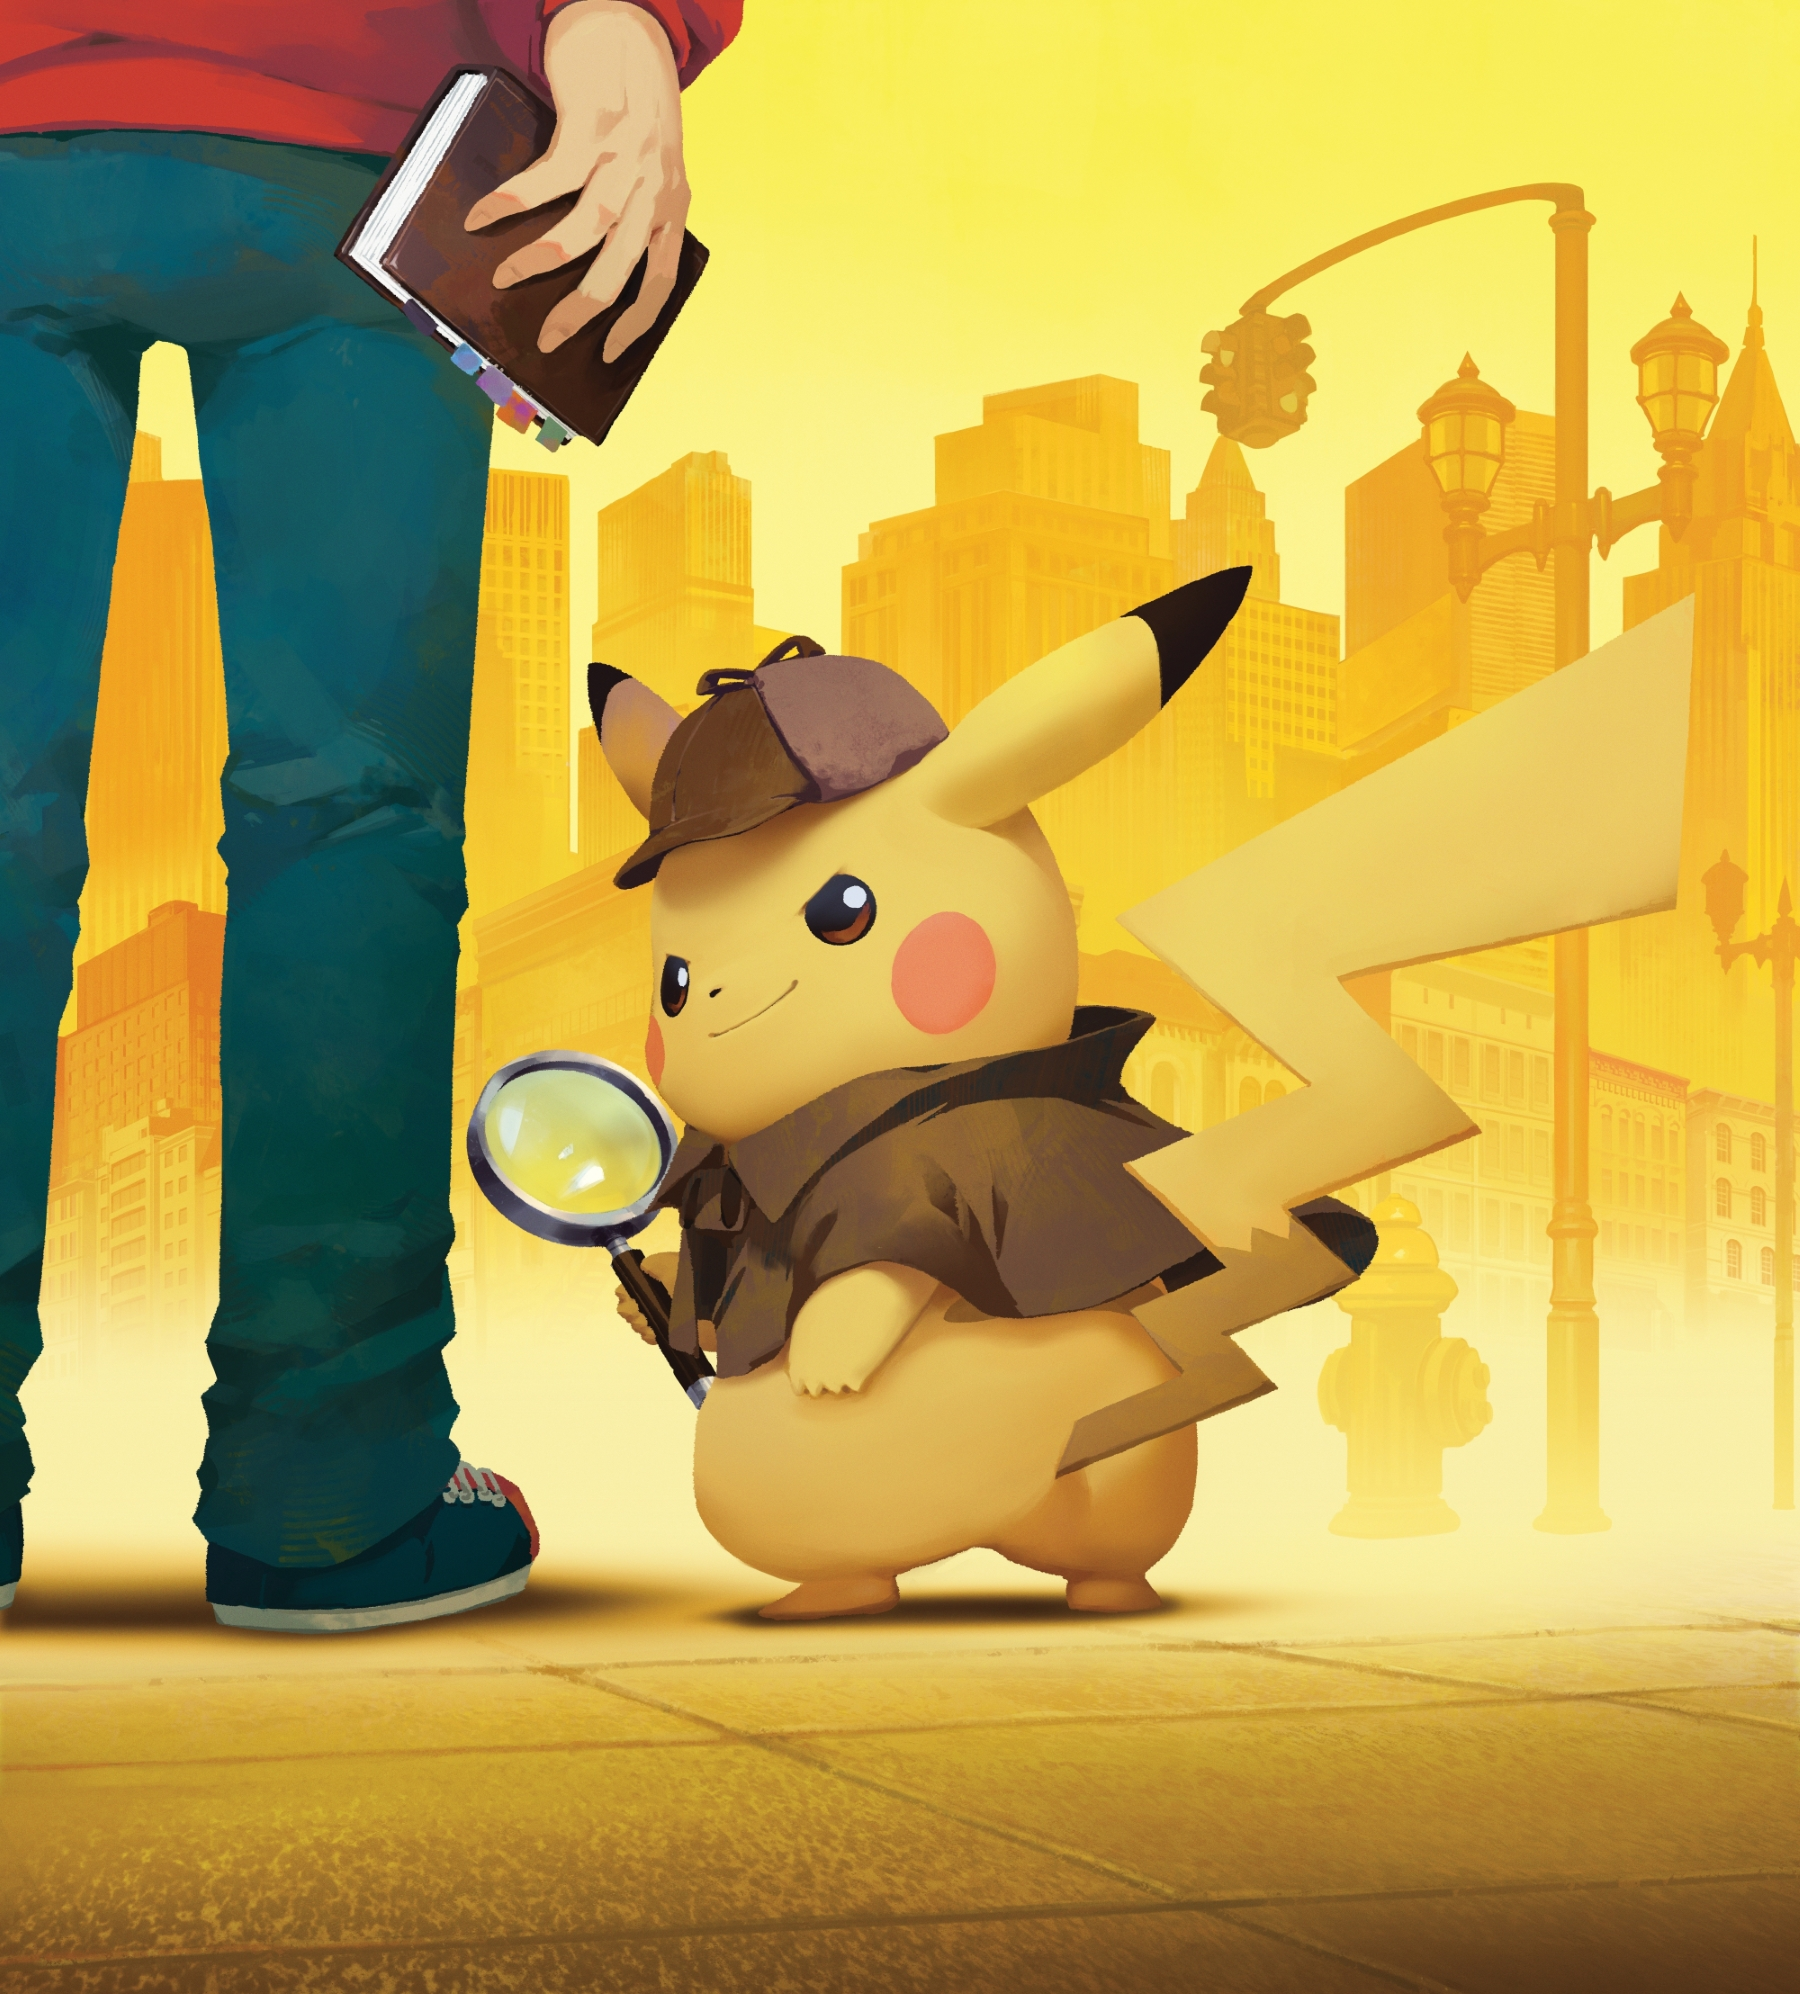 Detective Pikachu review – the great electric mouse detective